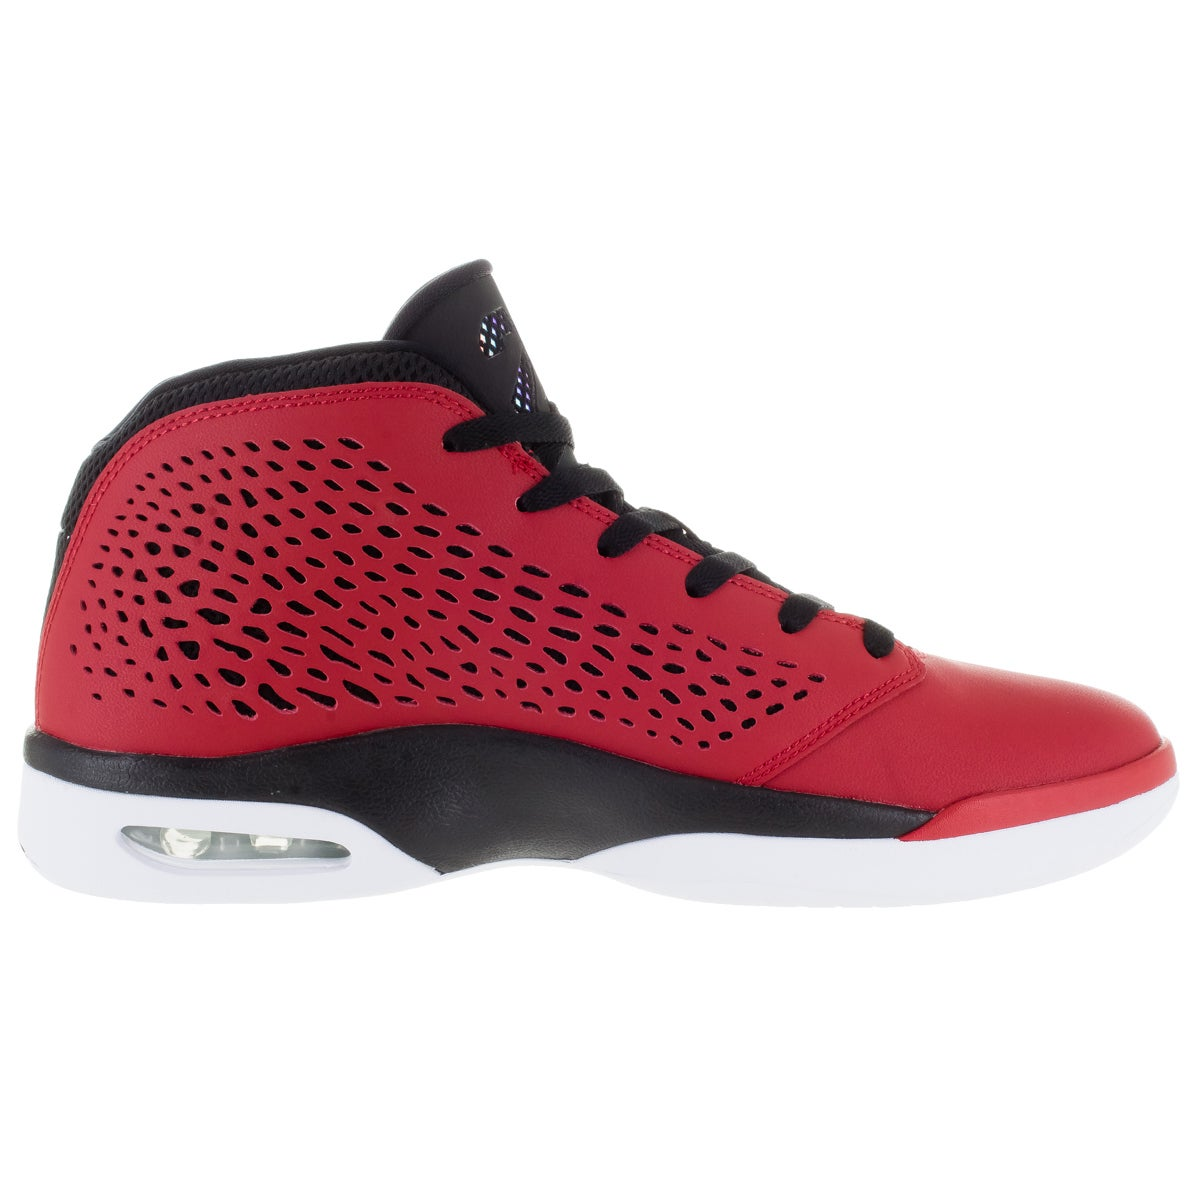 603bcce1a4e51c Shop Nike Jordan Men s Jordan Flight 2015 Gym Red White Black White  Basketball Shoe - Free Shipping Today - Overstock.com - 12318454